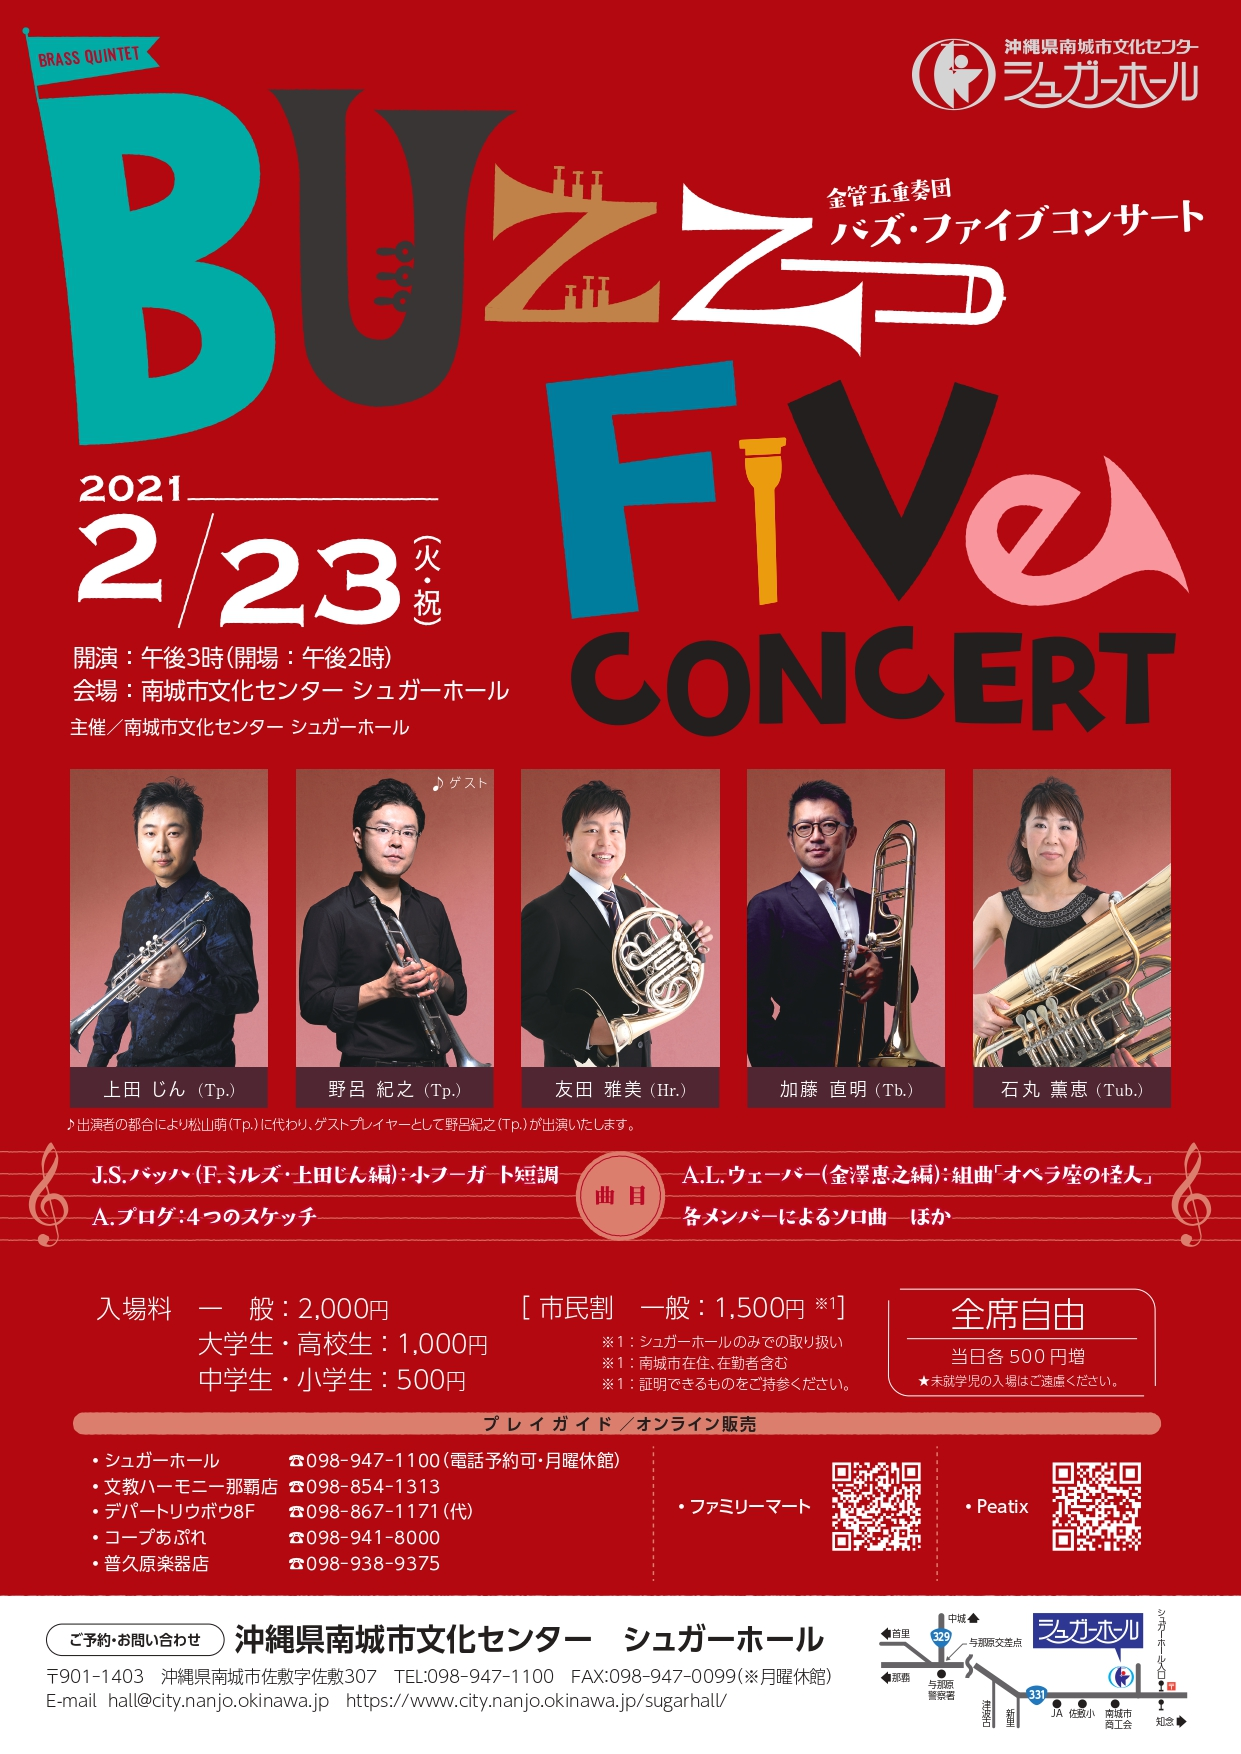 Buzz Five Concert ~金管五重奏団 バズ・ファイブコンサート~サムネイル画像